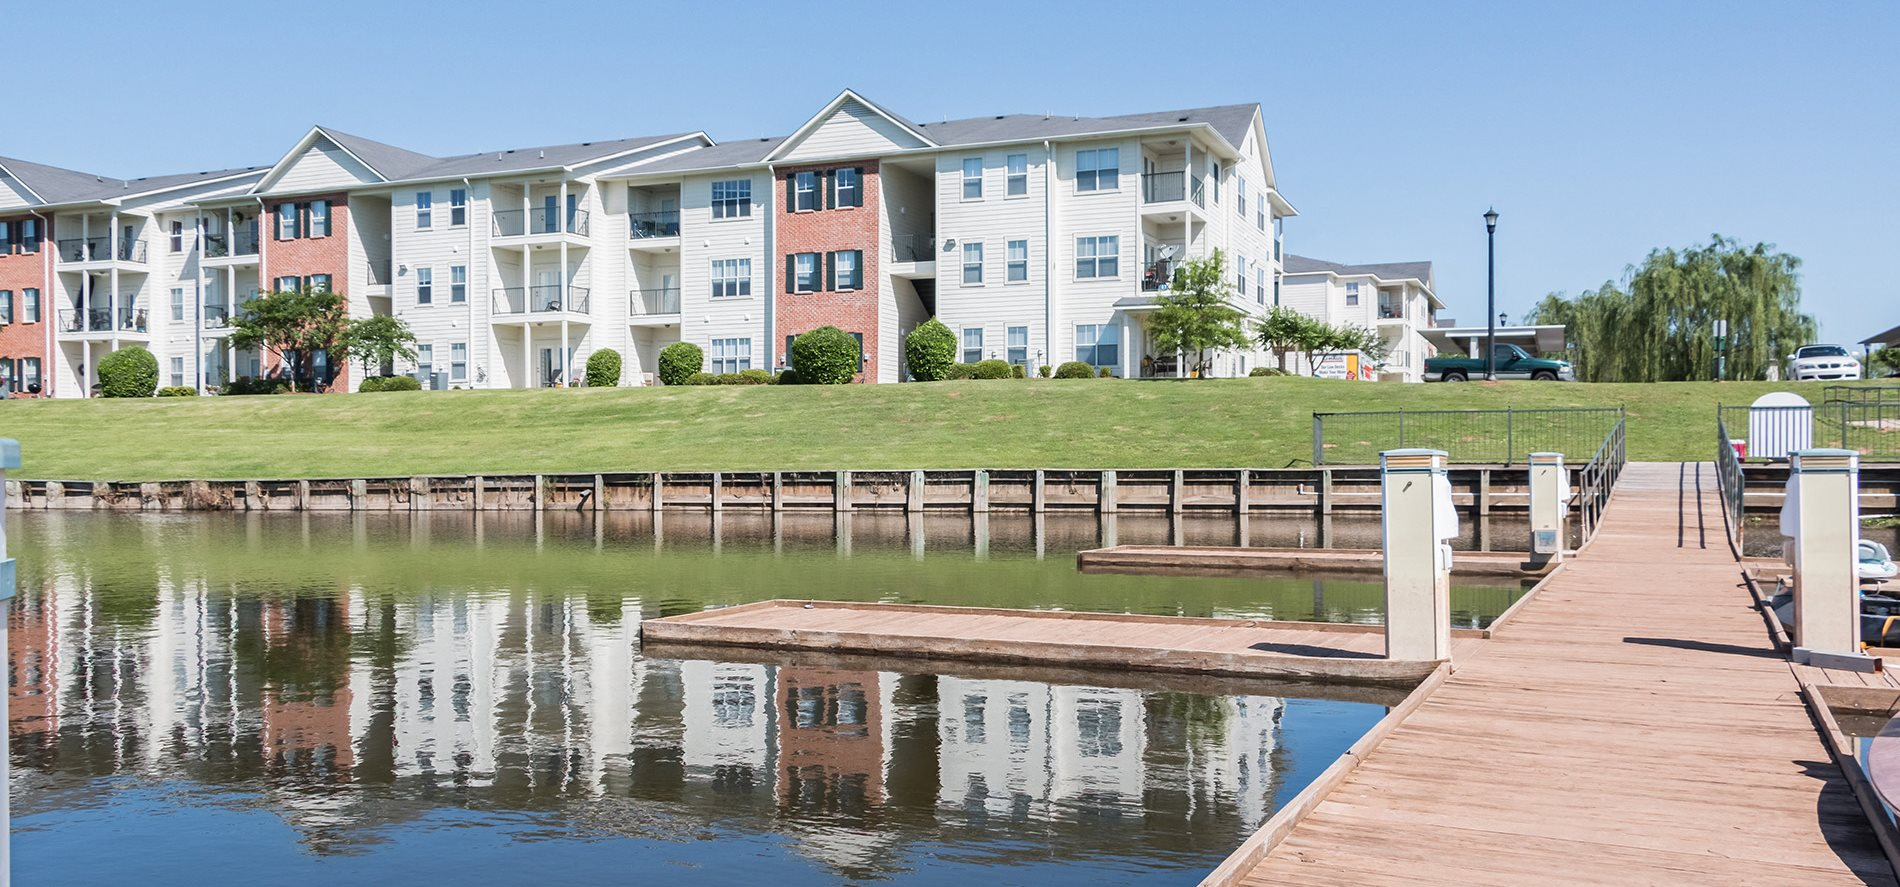 Dock View at Ultris Island Park Apartments in Shreveport, Lousiana, LA